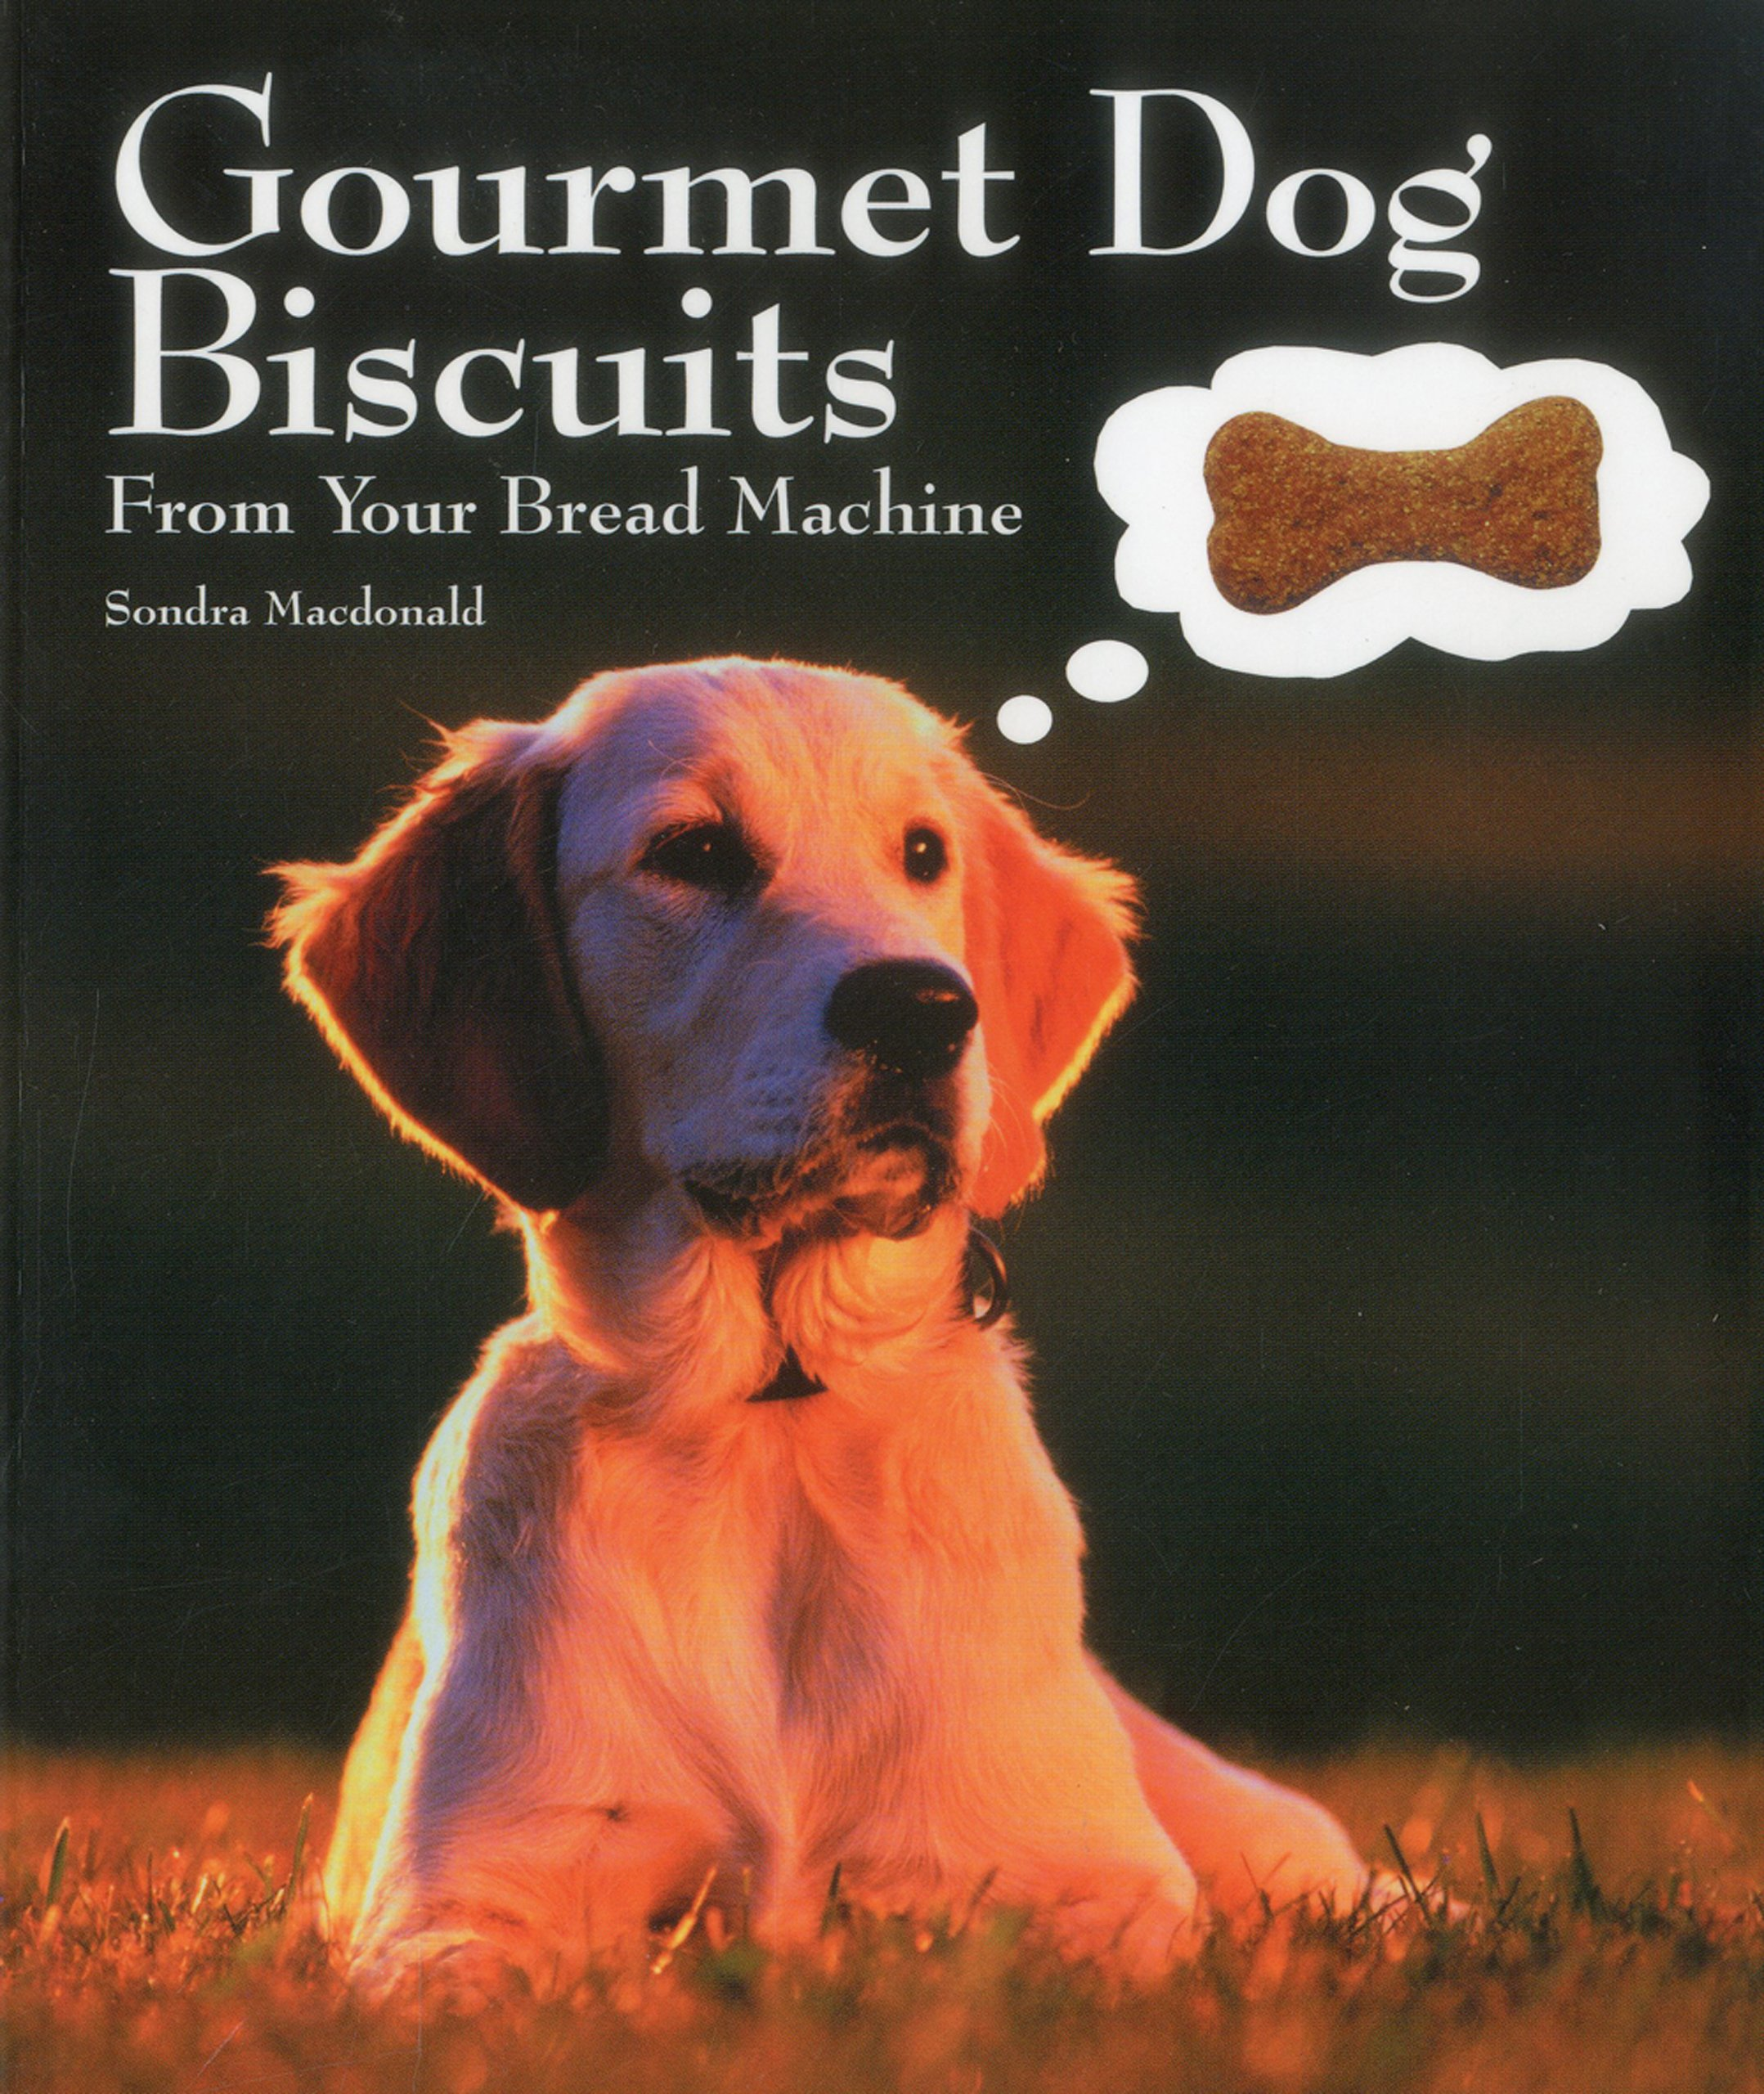 Gourmet Dog Biscuits: From Your Bread Machine